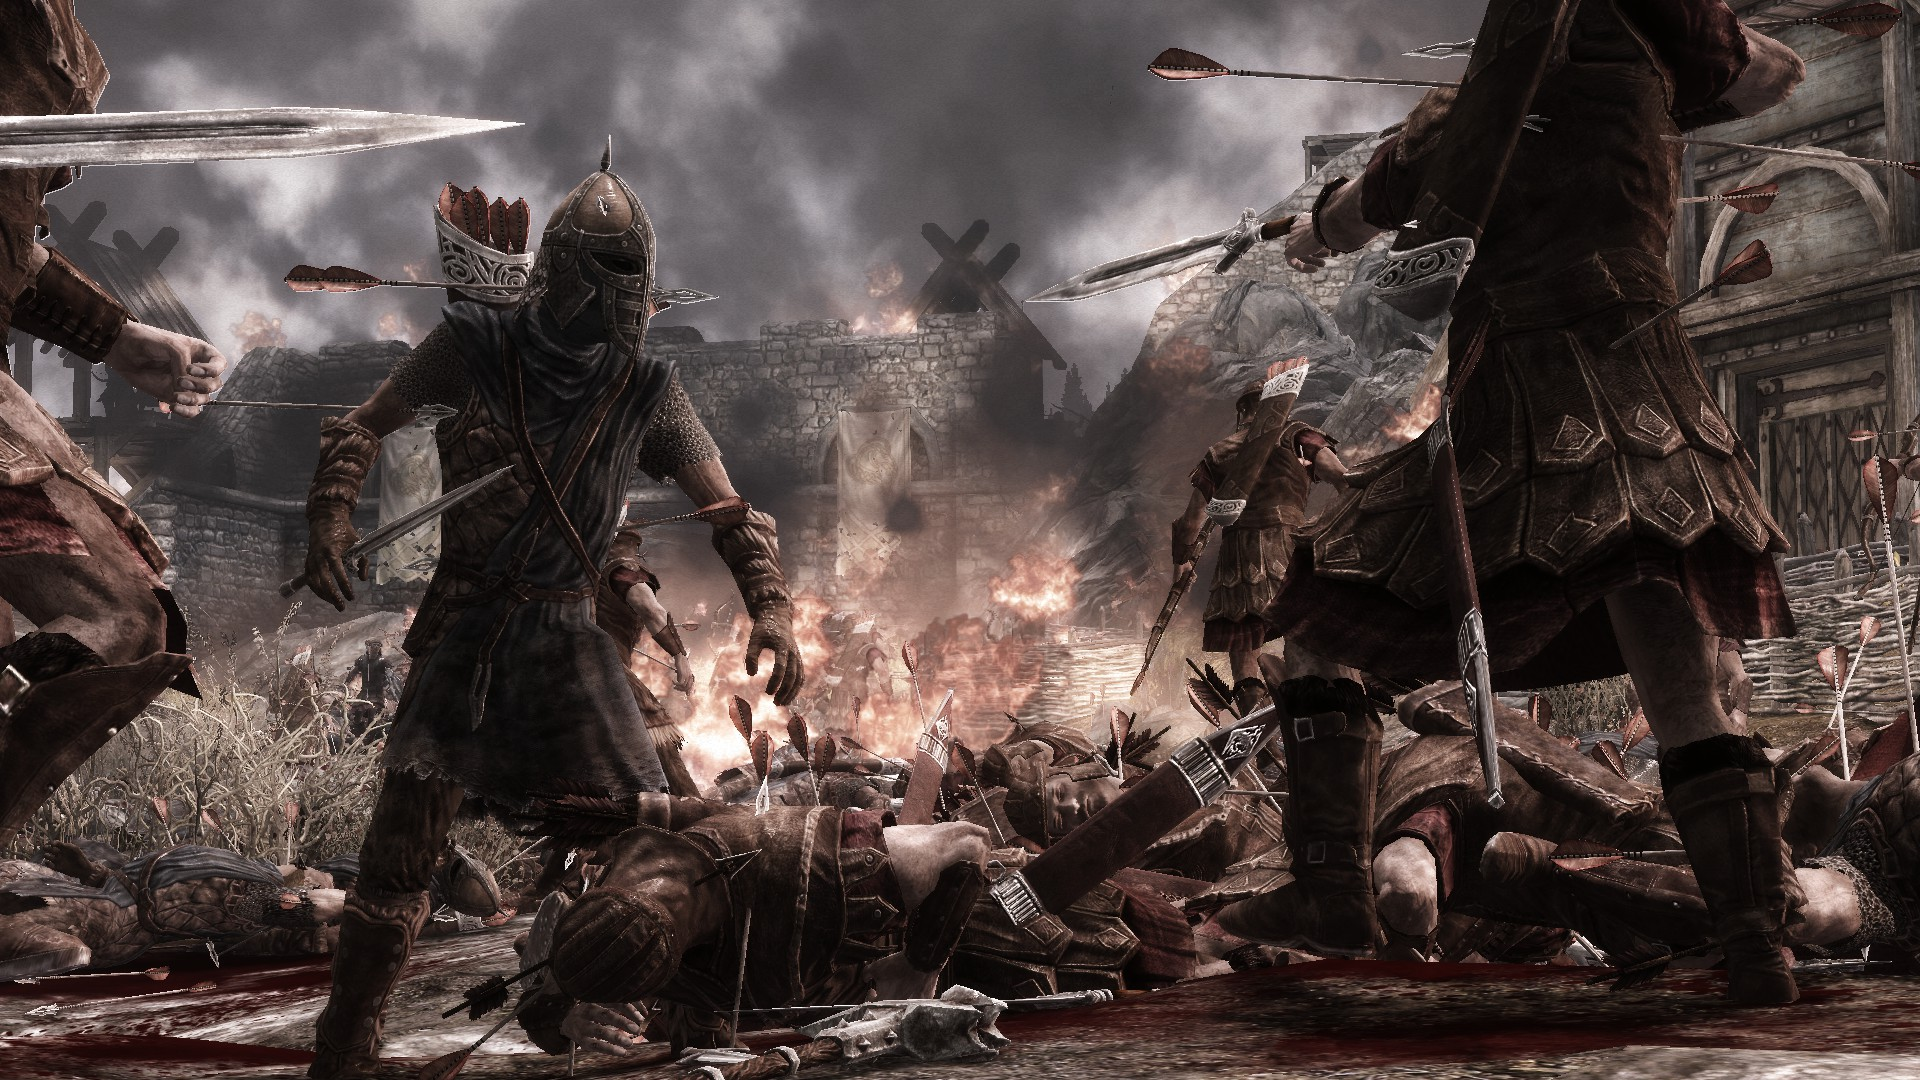 All You Need Is Kill At Skyrim Nexus Mods And Community